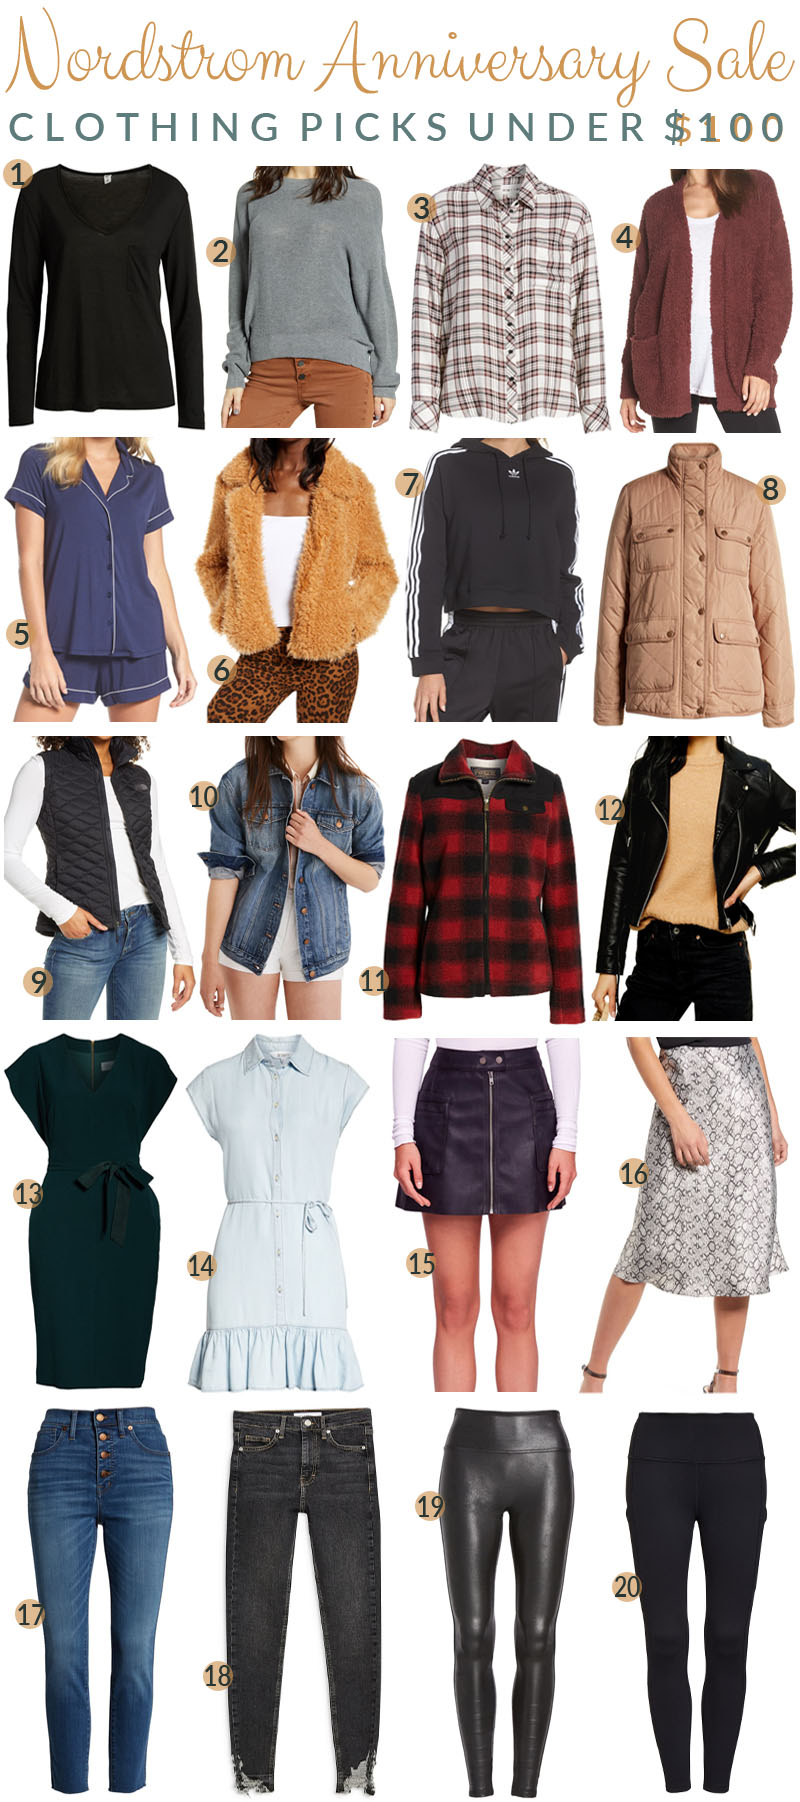 Nordstrom Anniversary Sale Public Access: Womens Fashion Picks Under $100 featured by top US fashion blog, Walking in Memphis in High Heels